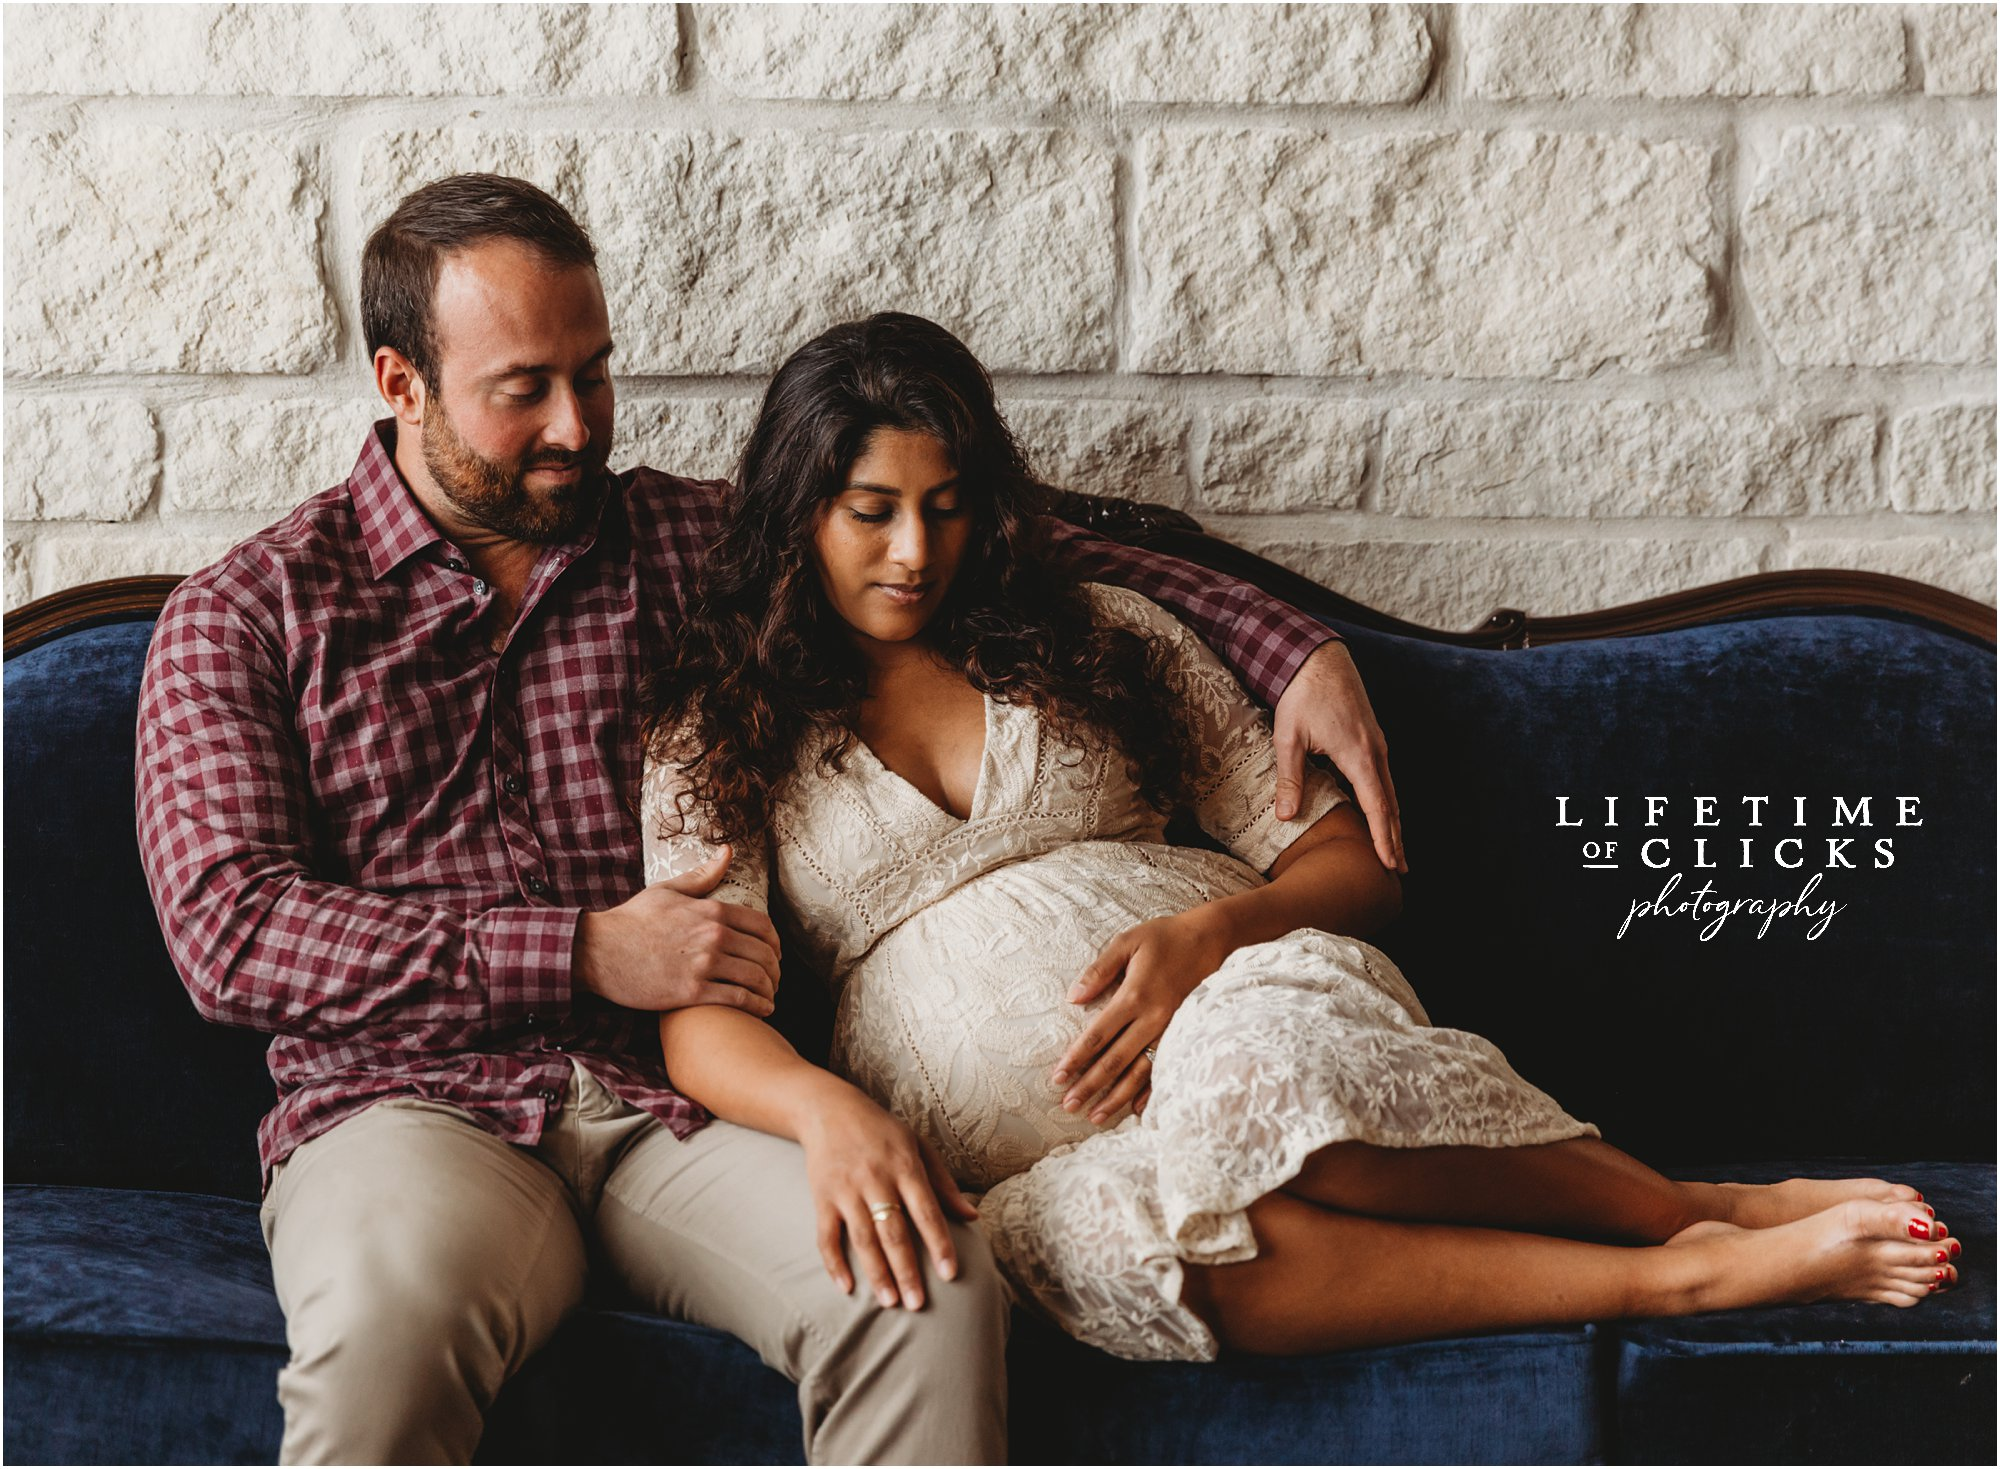 Intimate maternity portrait of husband and wife